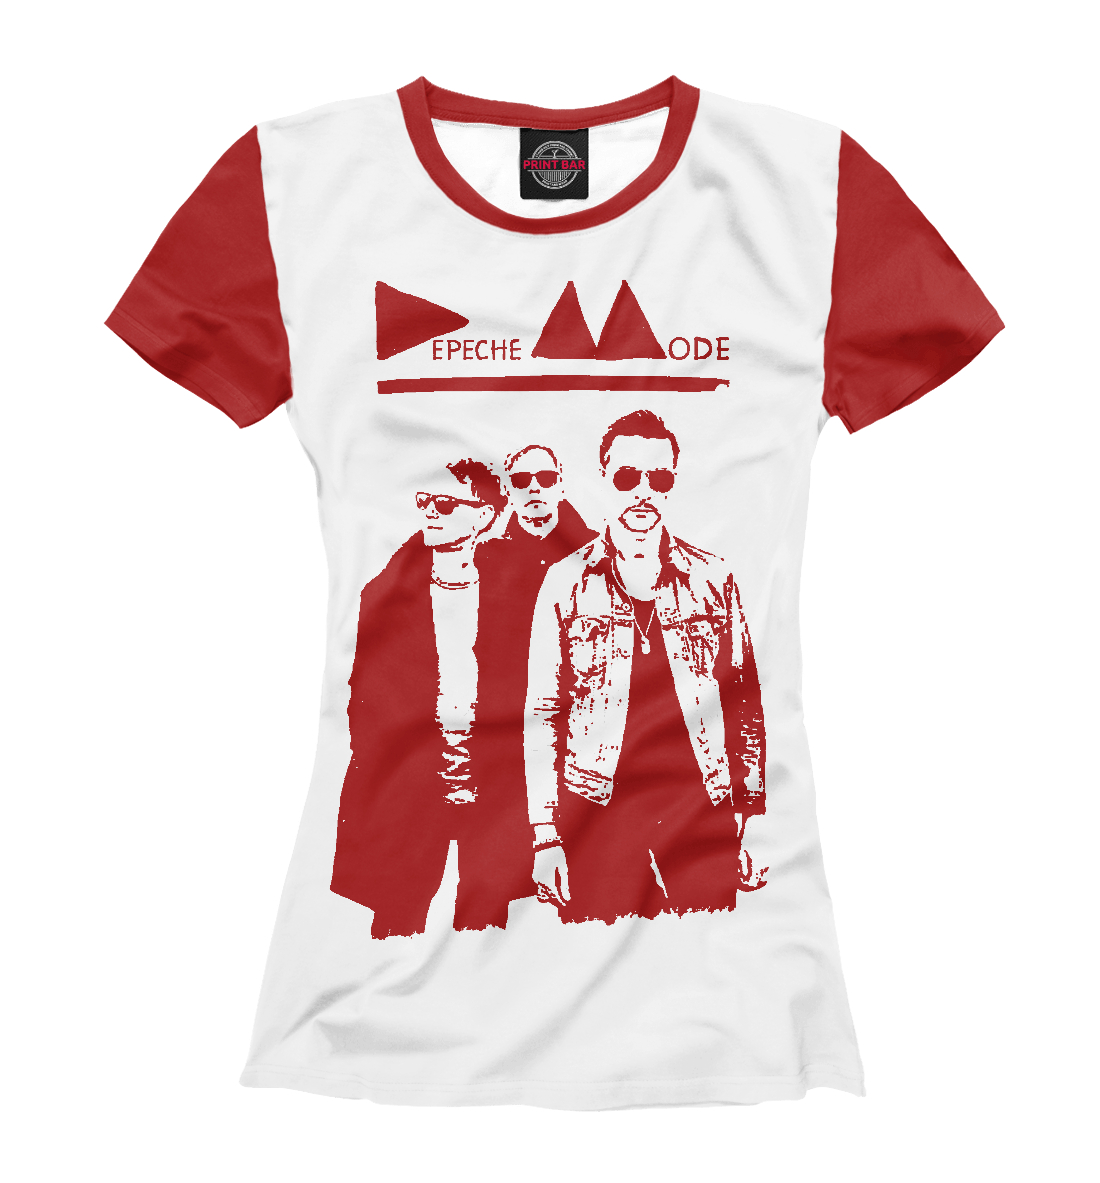 Купить Depeche Mode, Printbar, Футболки, DPM-489098-fut-1